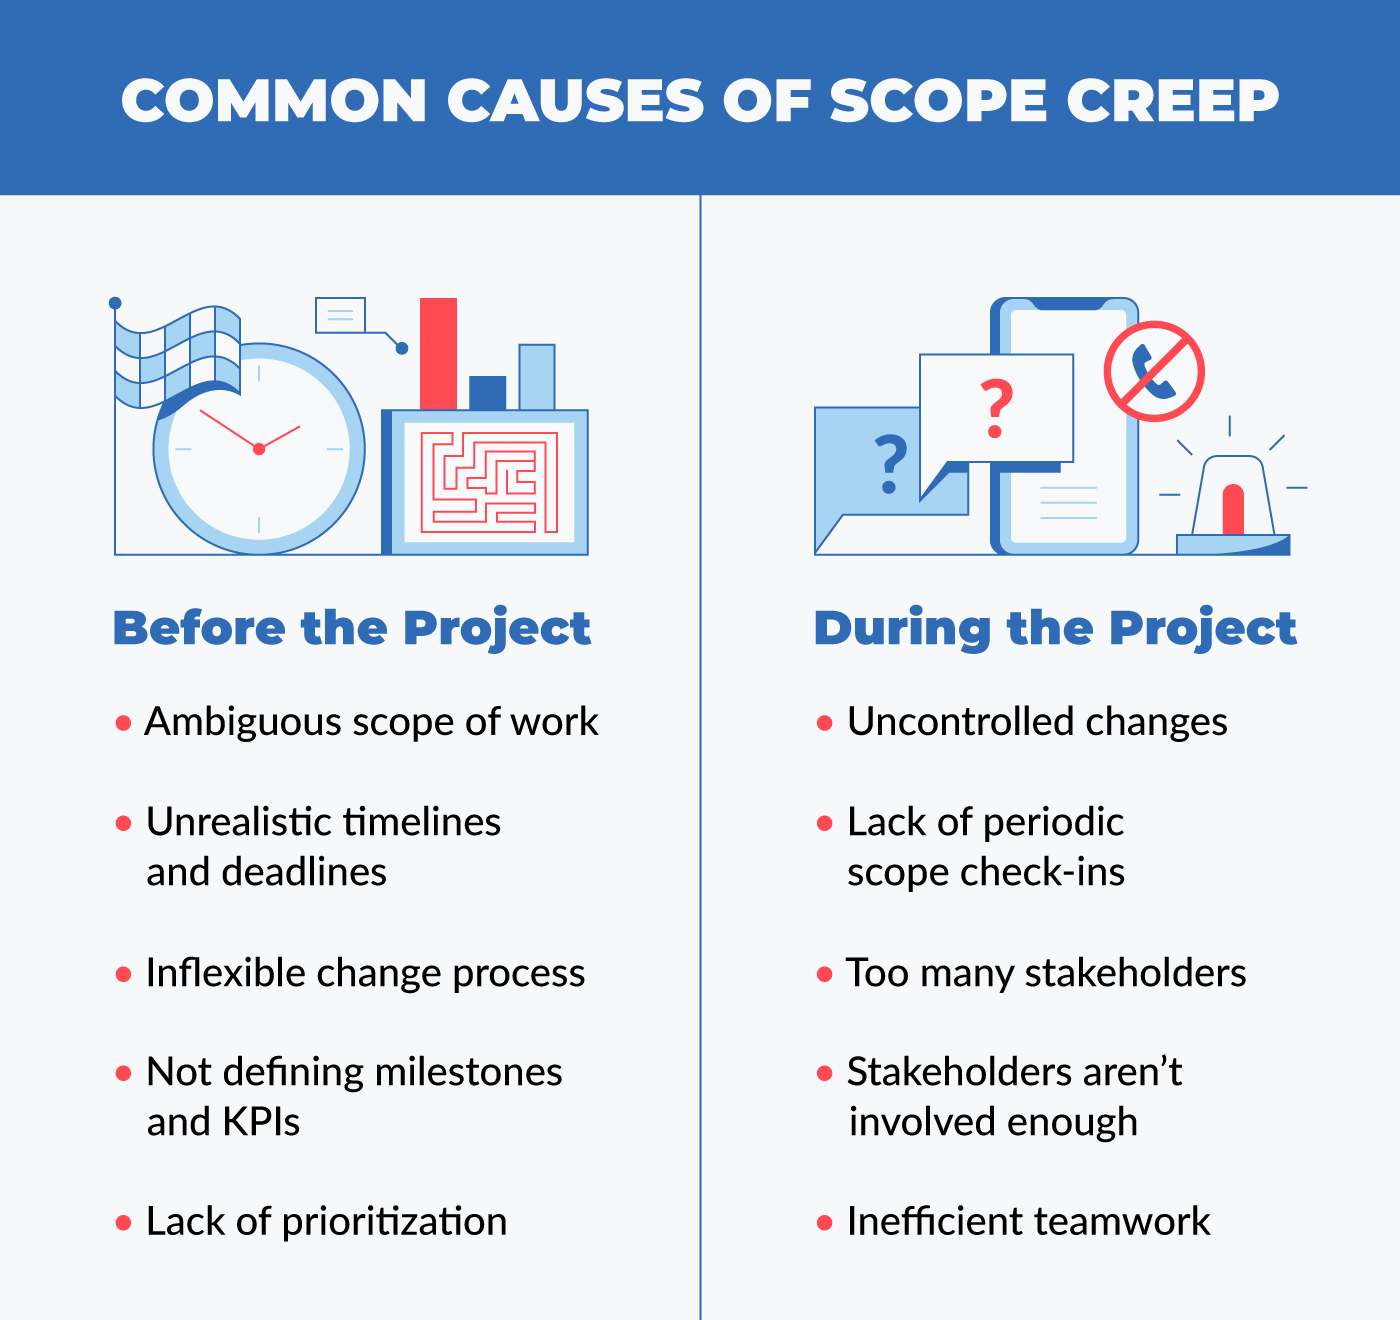 common causes of scope creep